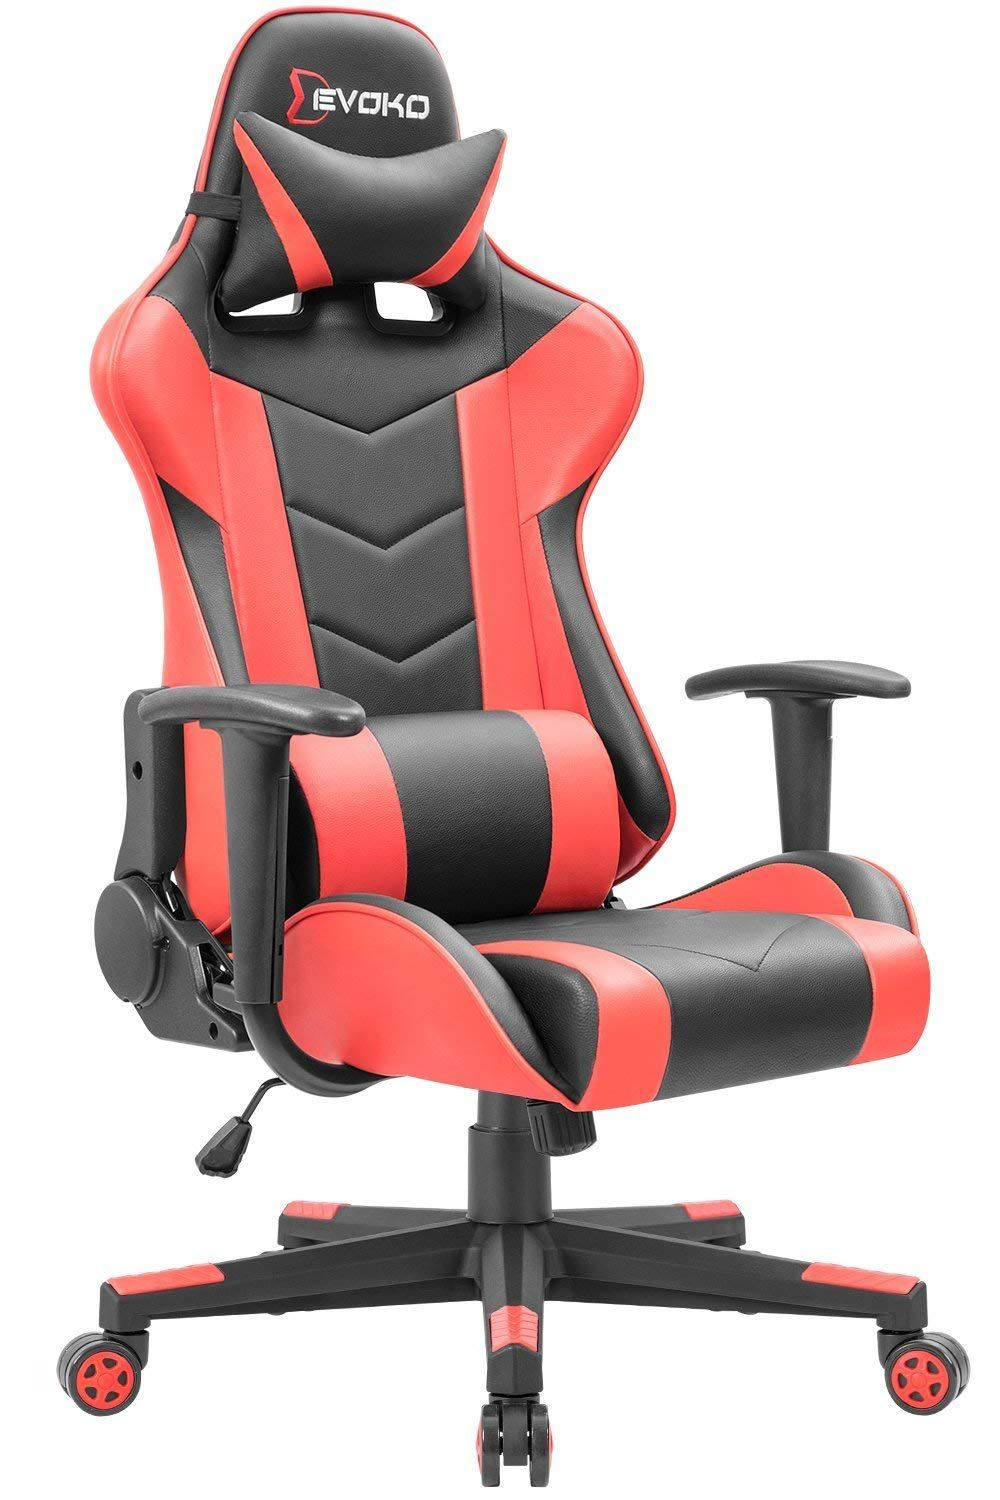 Top 10 Best Video Game Chairs In 2020 Reviews Executive Office